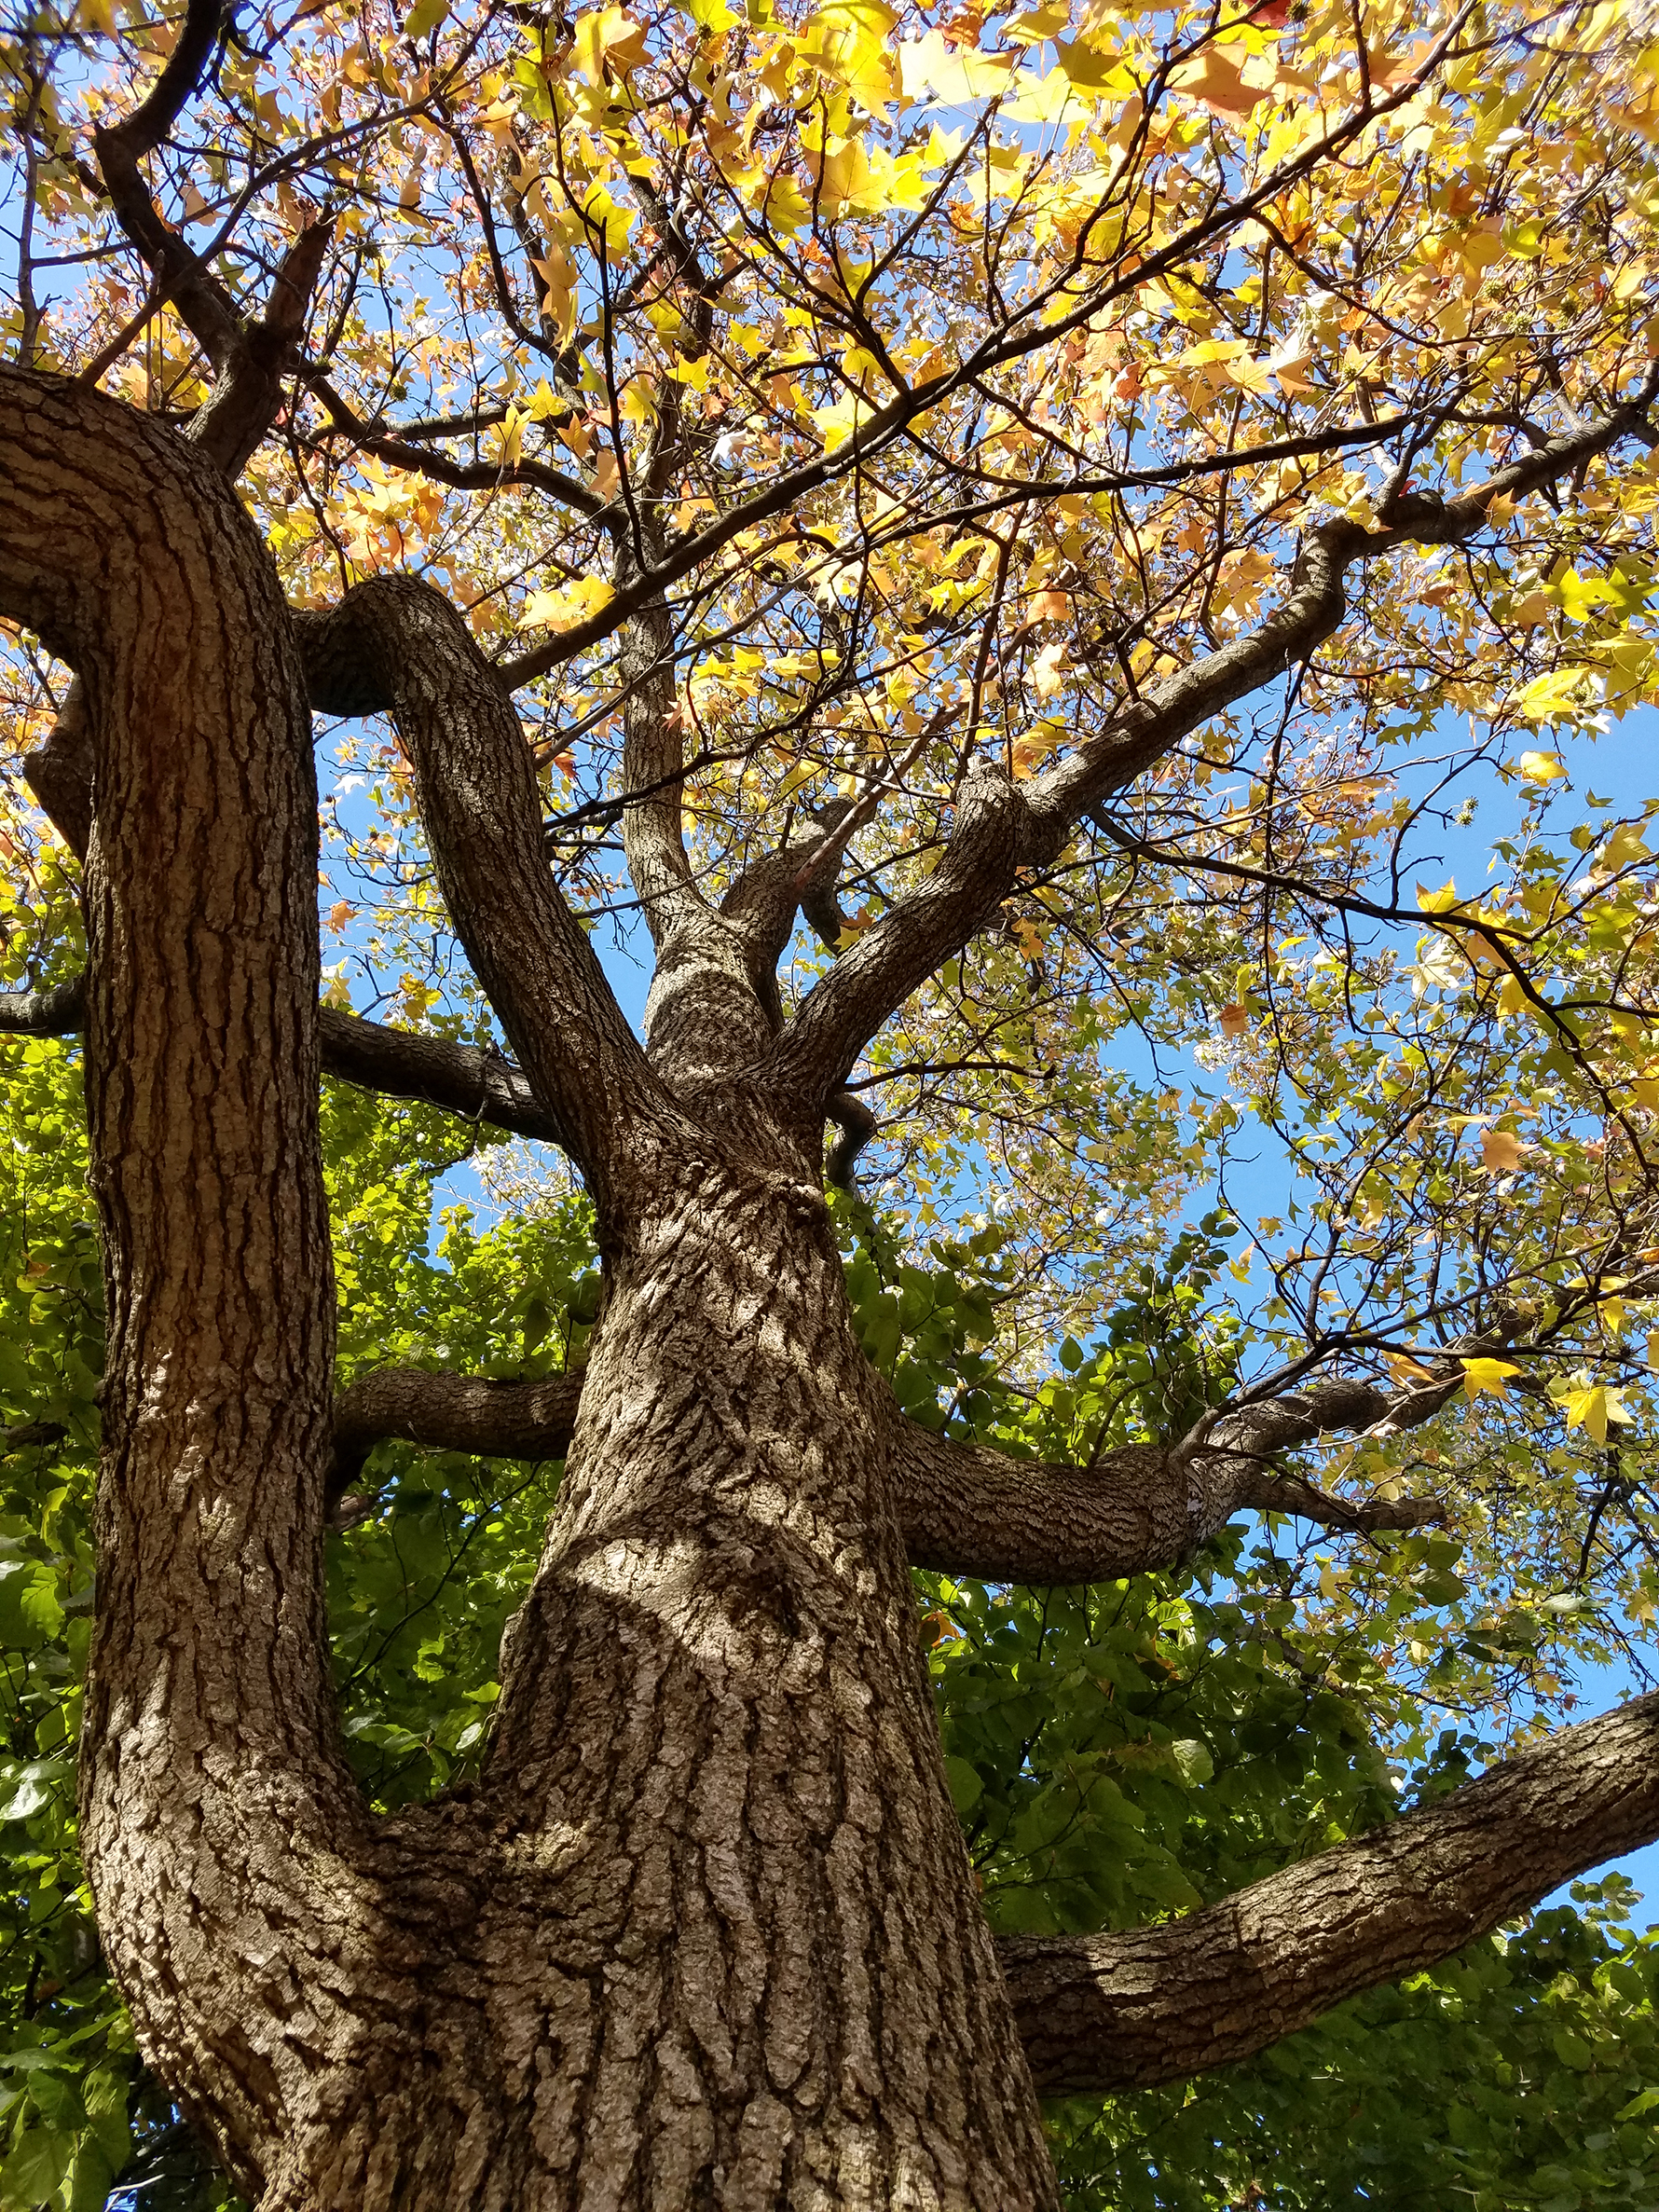 Looking up at the sweetgum treet with yellow leaves